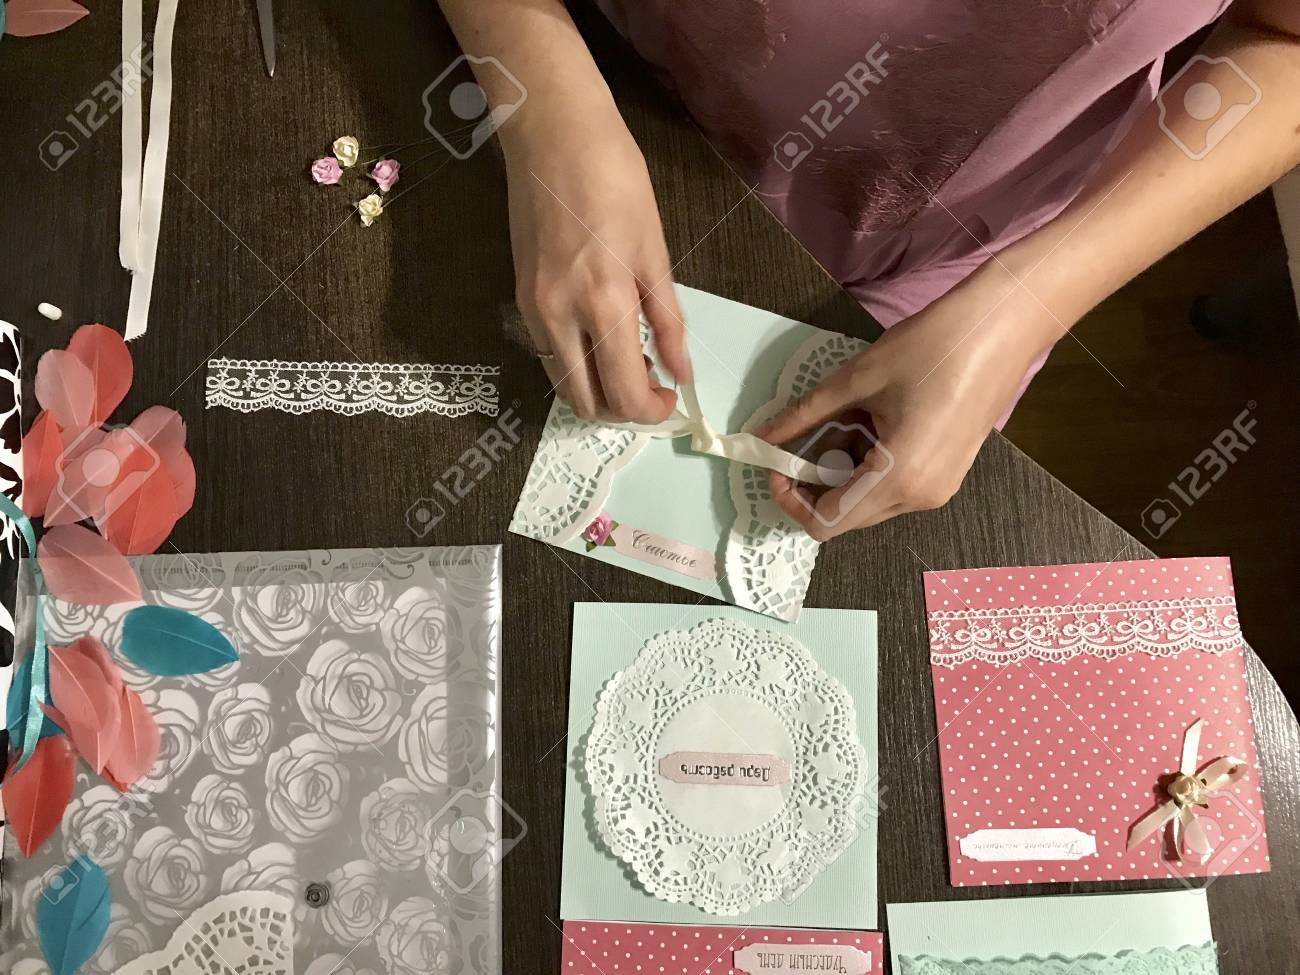 The Girl Is Engaged In Making Greeting Cards At Home Using Paper